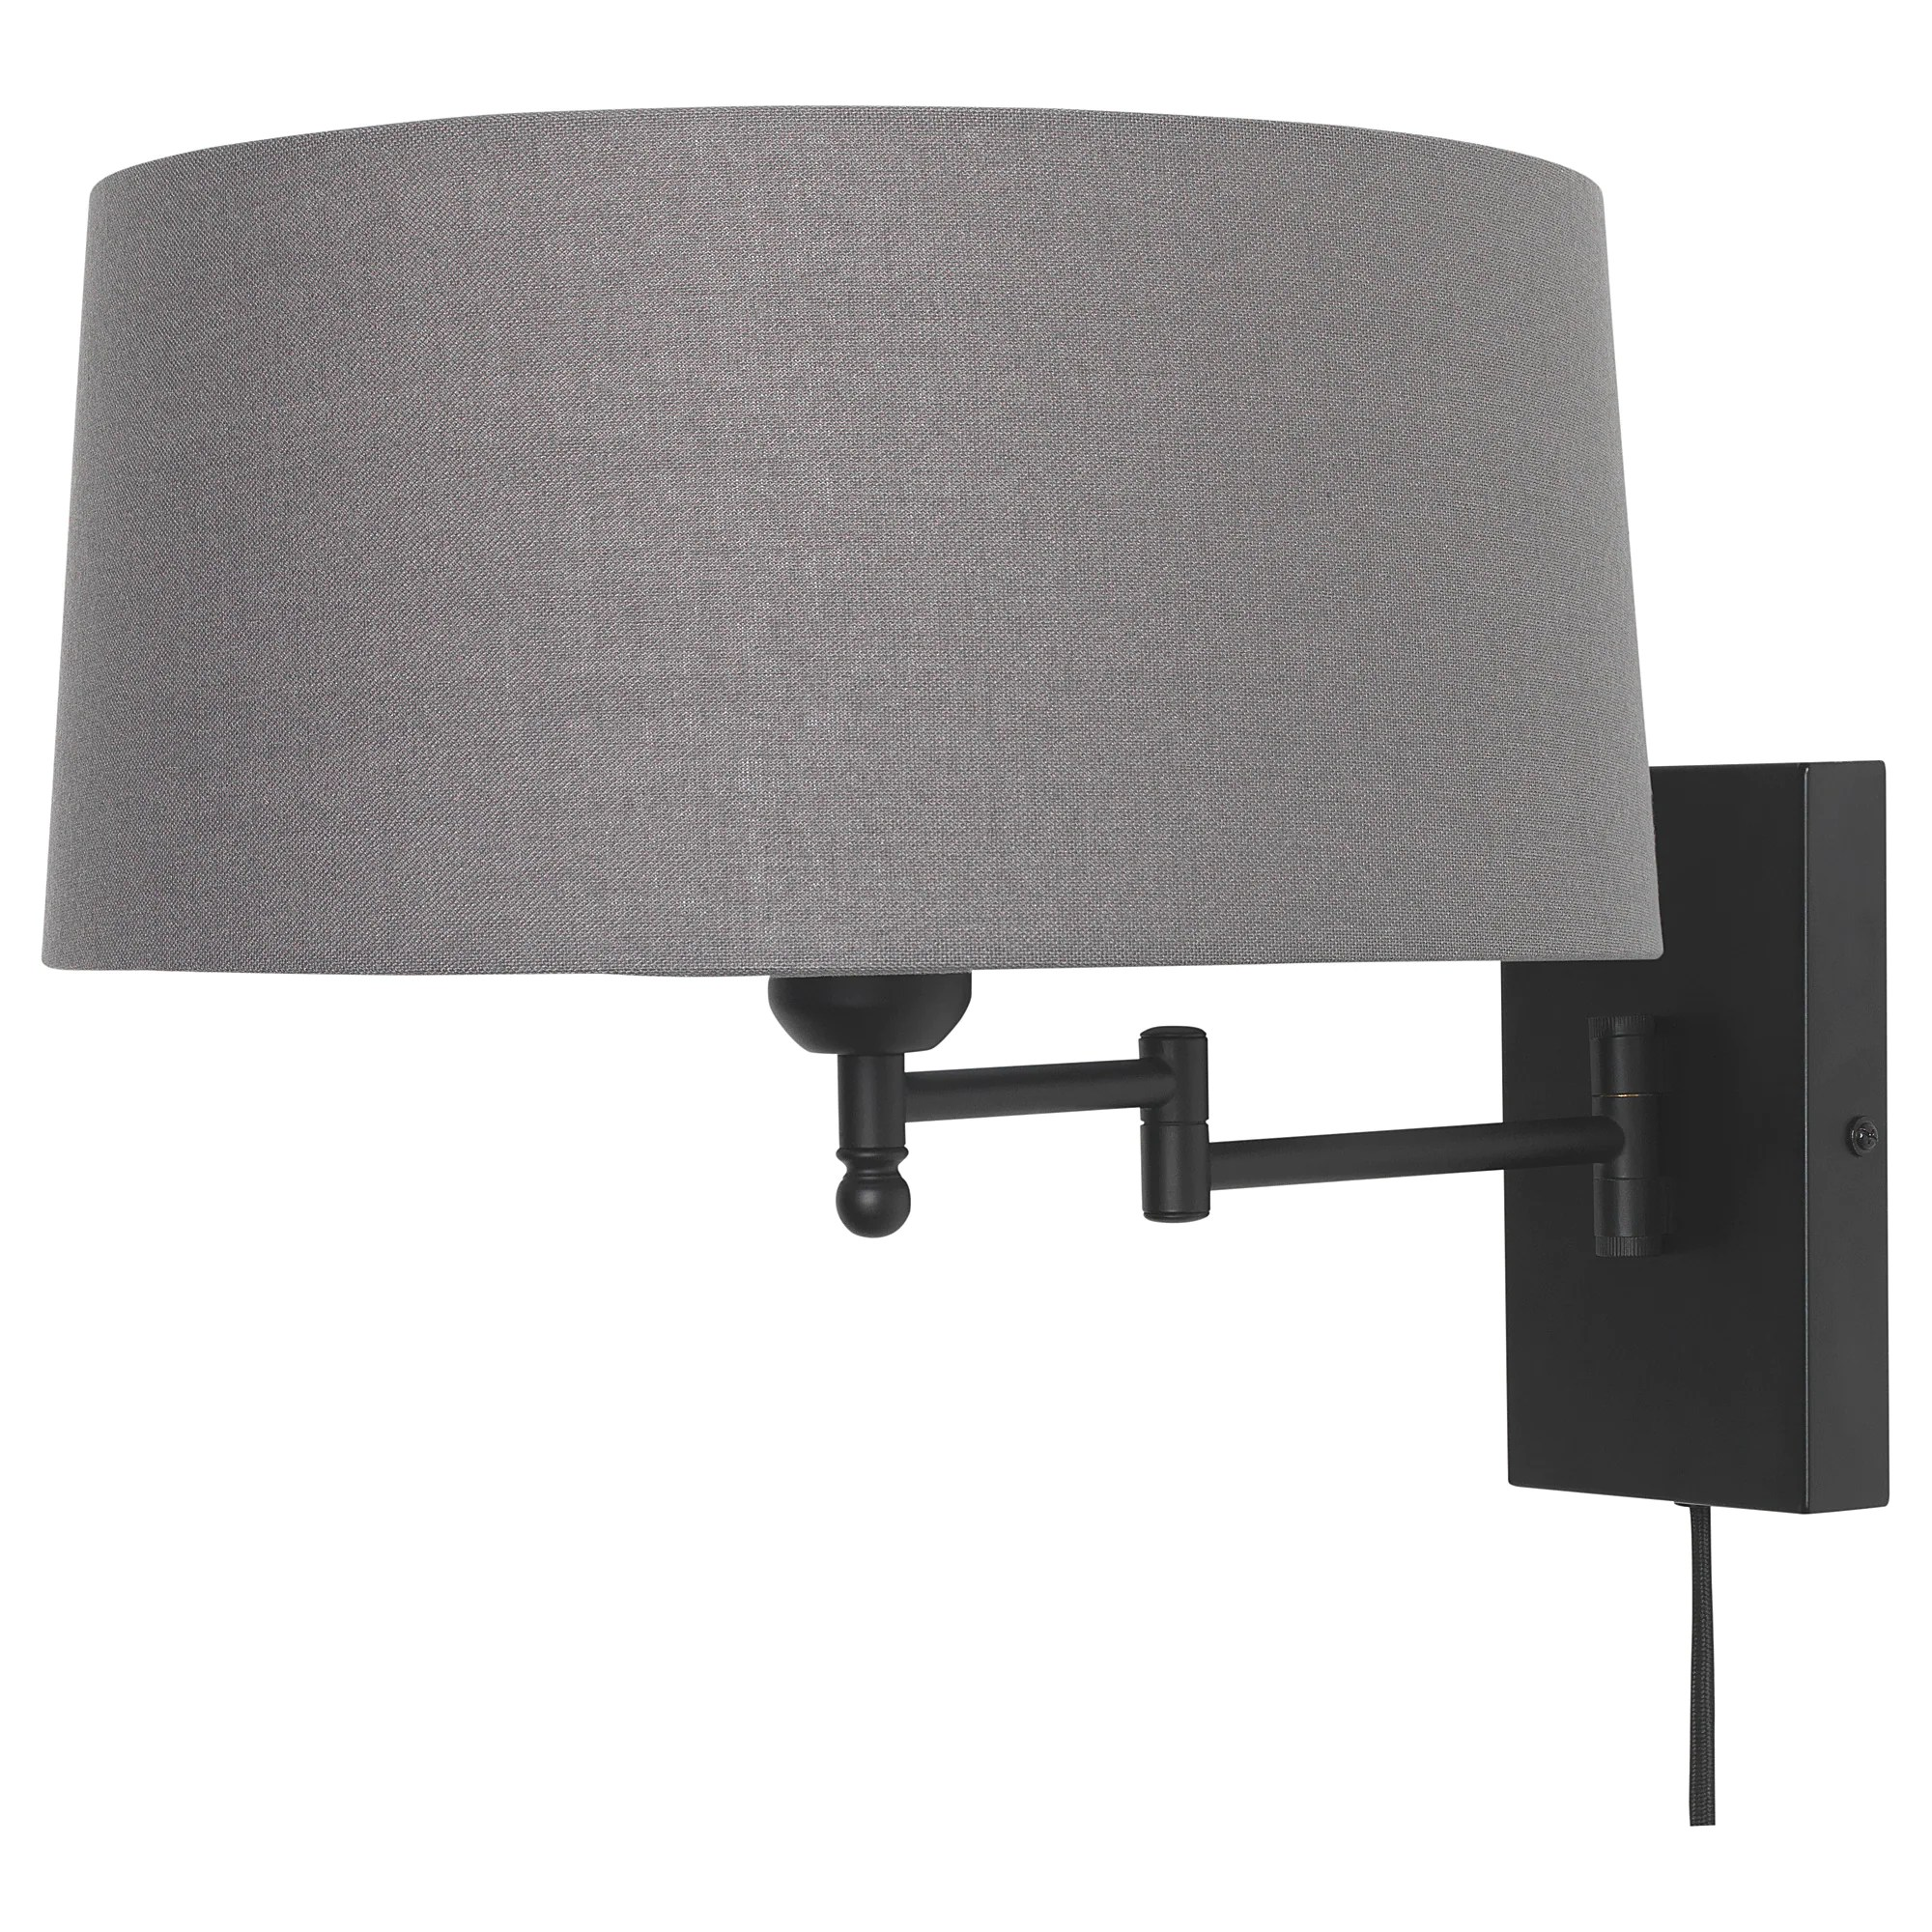 Arm Lamp Halkip Wall Lamp With Swing Arm Gray